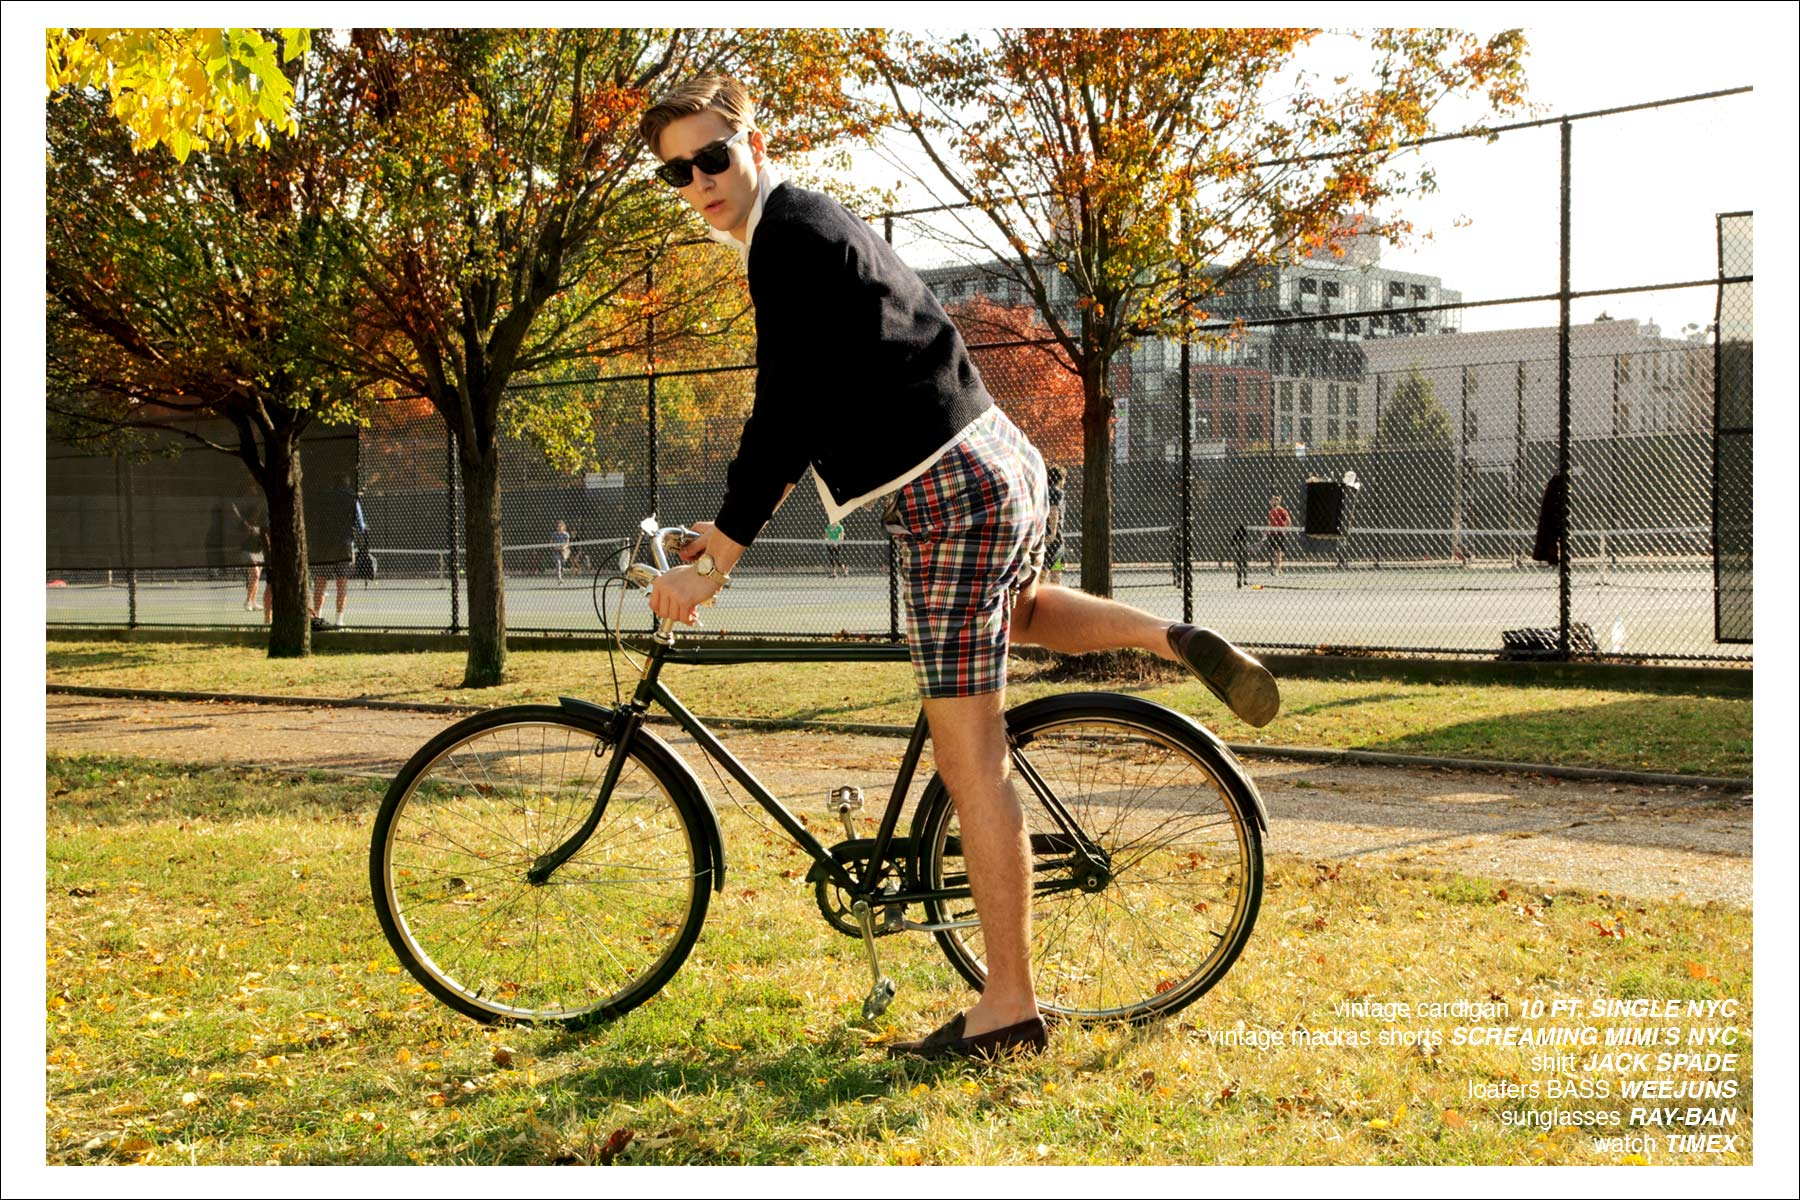 Model Samuel Roberts jumps on a vintage bicycle for Ponyboy Magazine's men's editorial